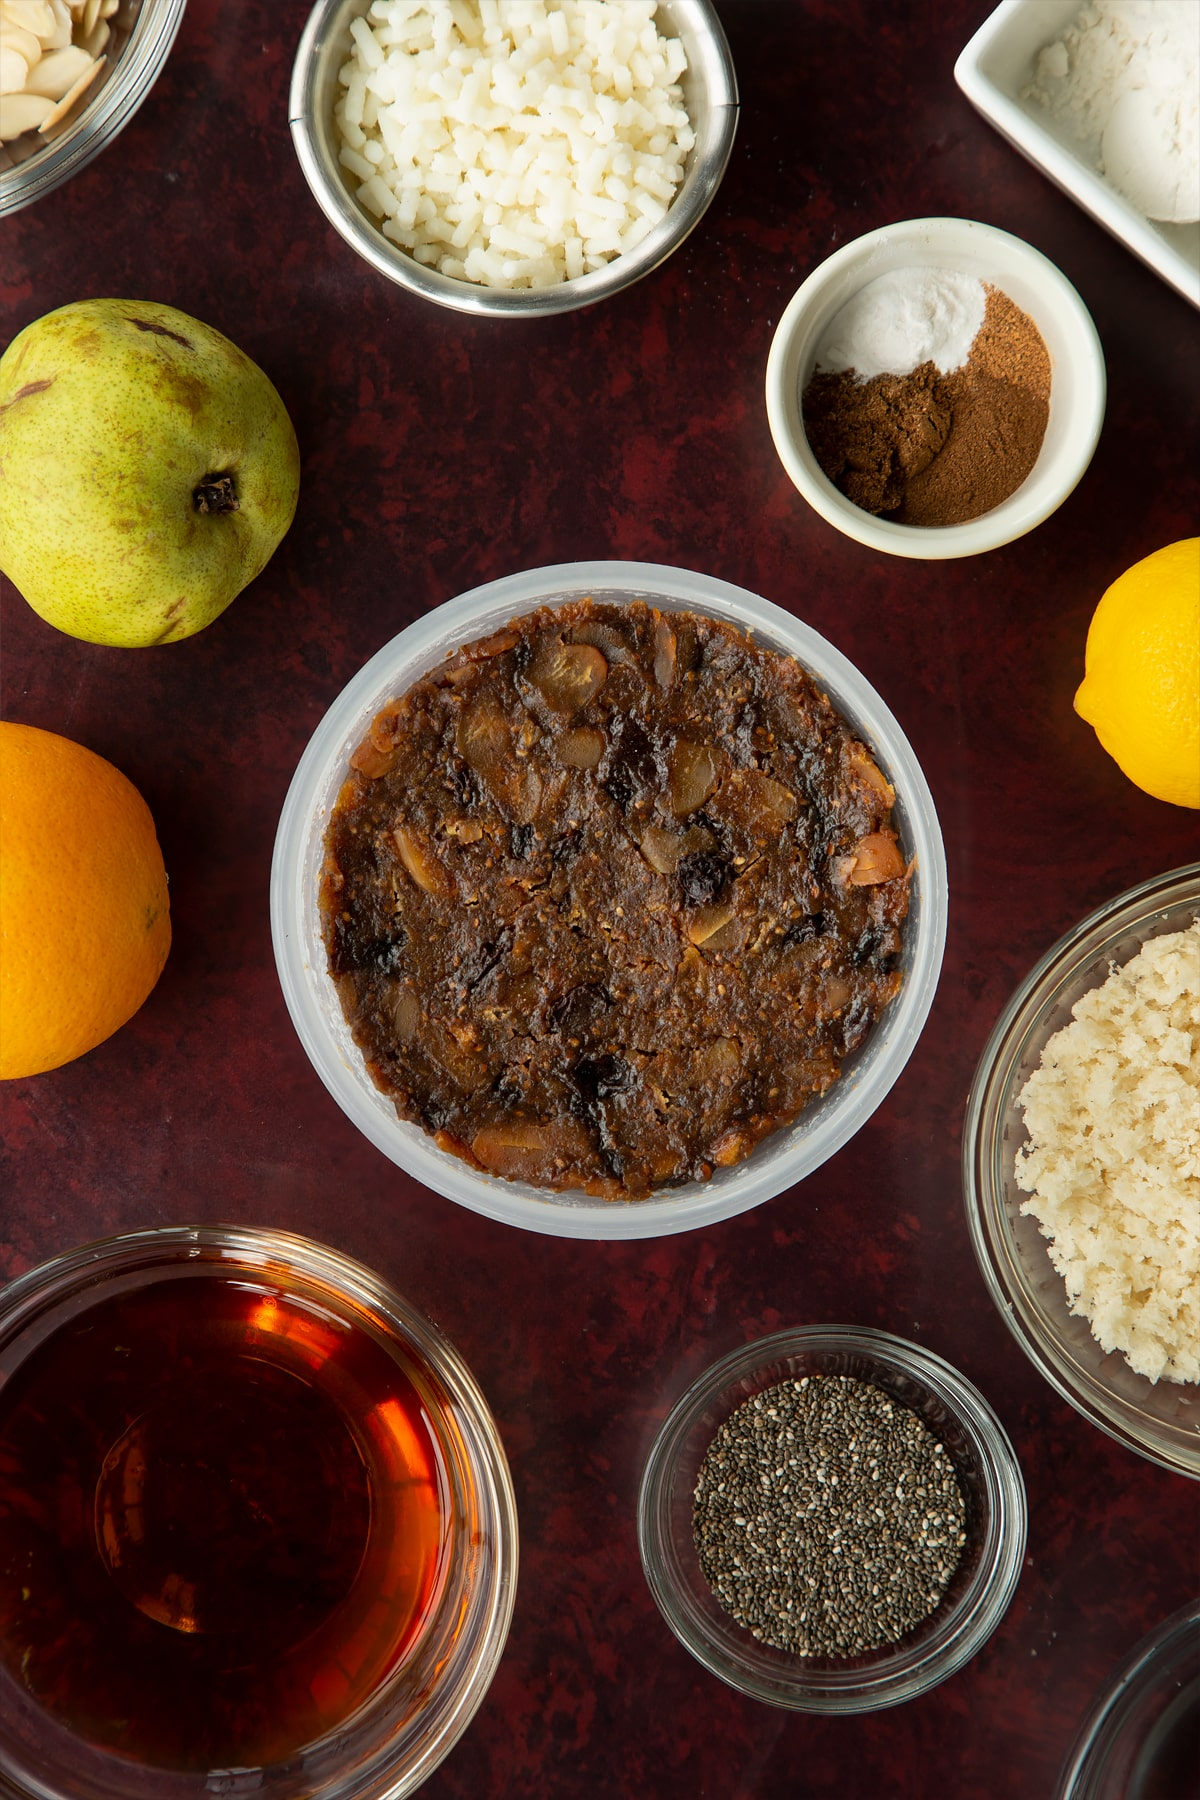 Steamed vegan Christmas pudding in a pudding basin. Ingredients to make vegan Christmas pudding surround the basin.